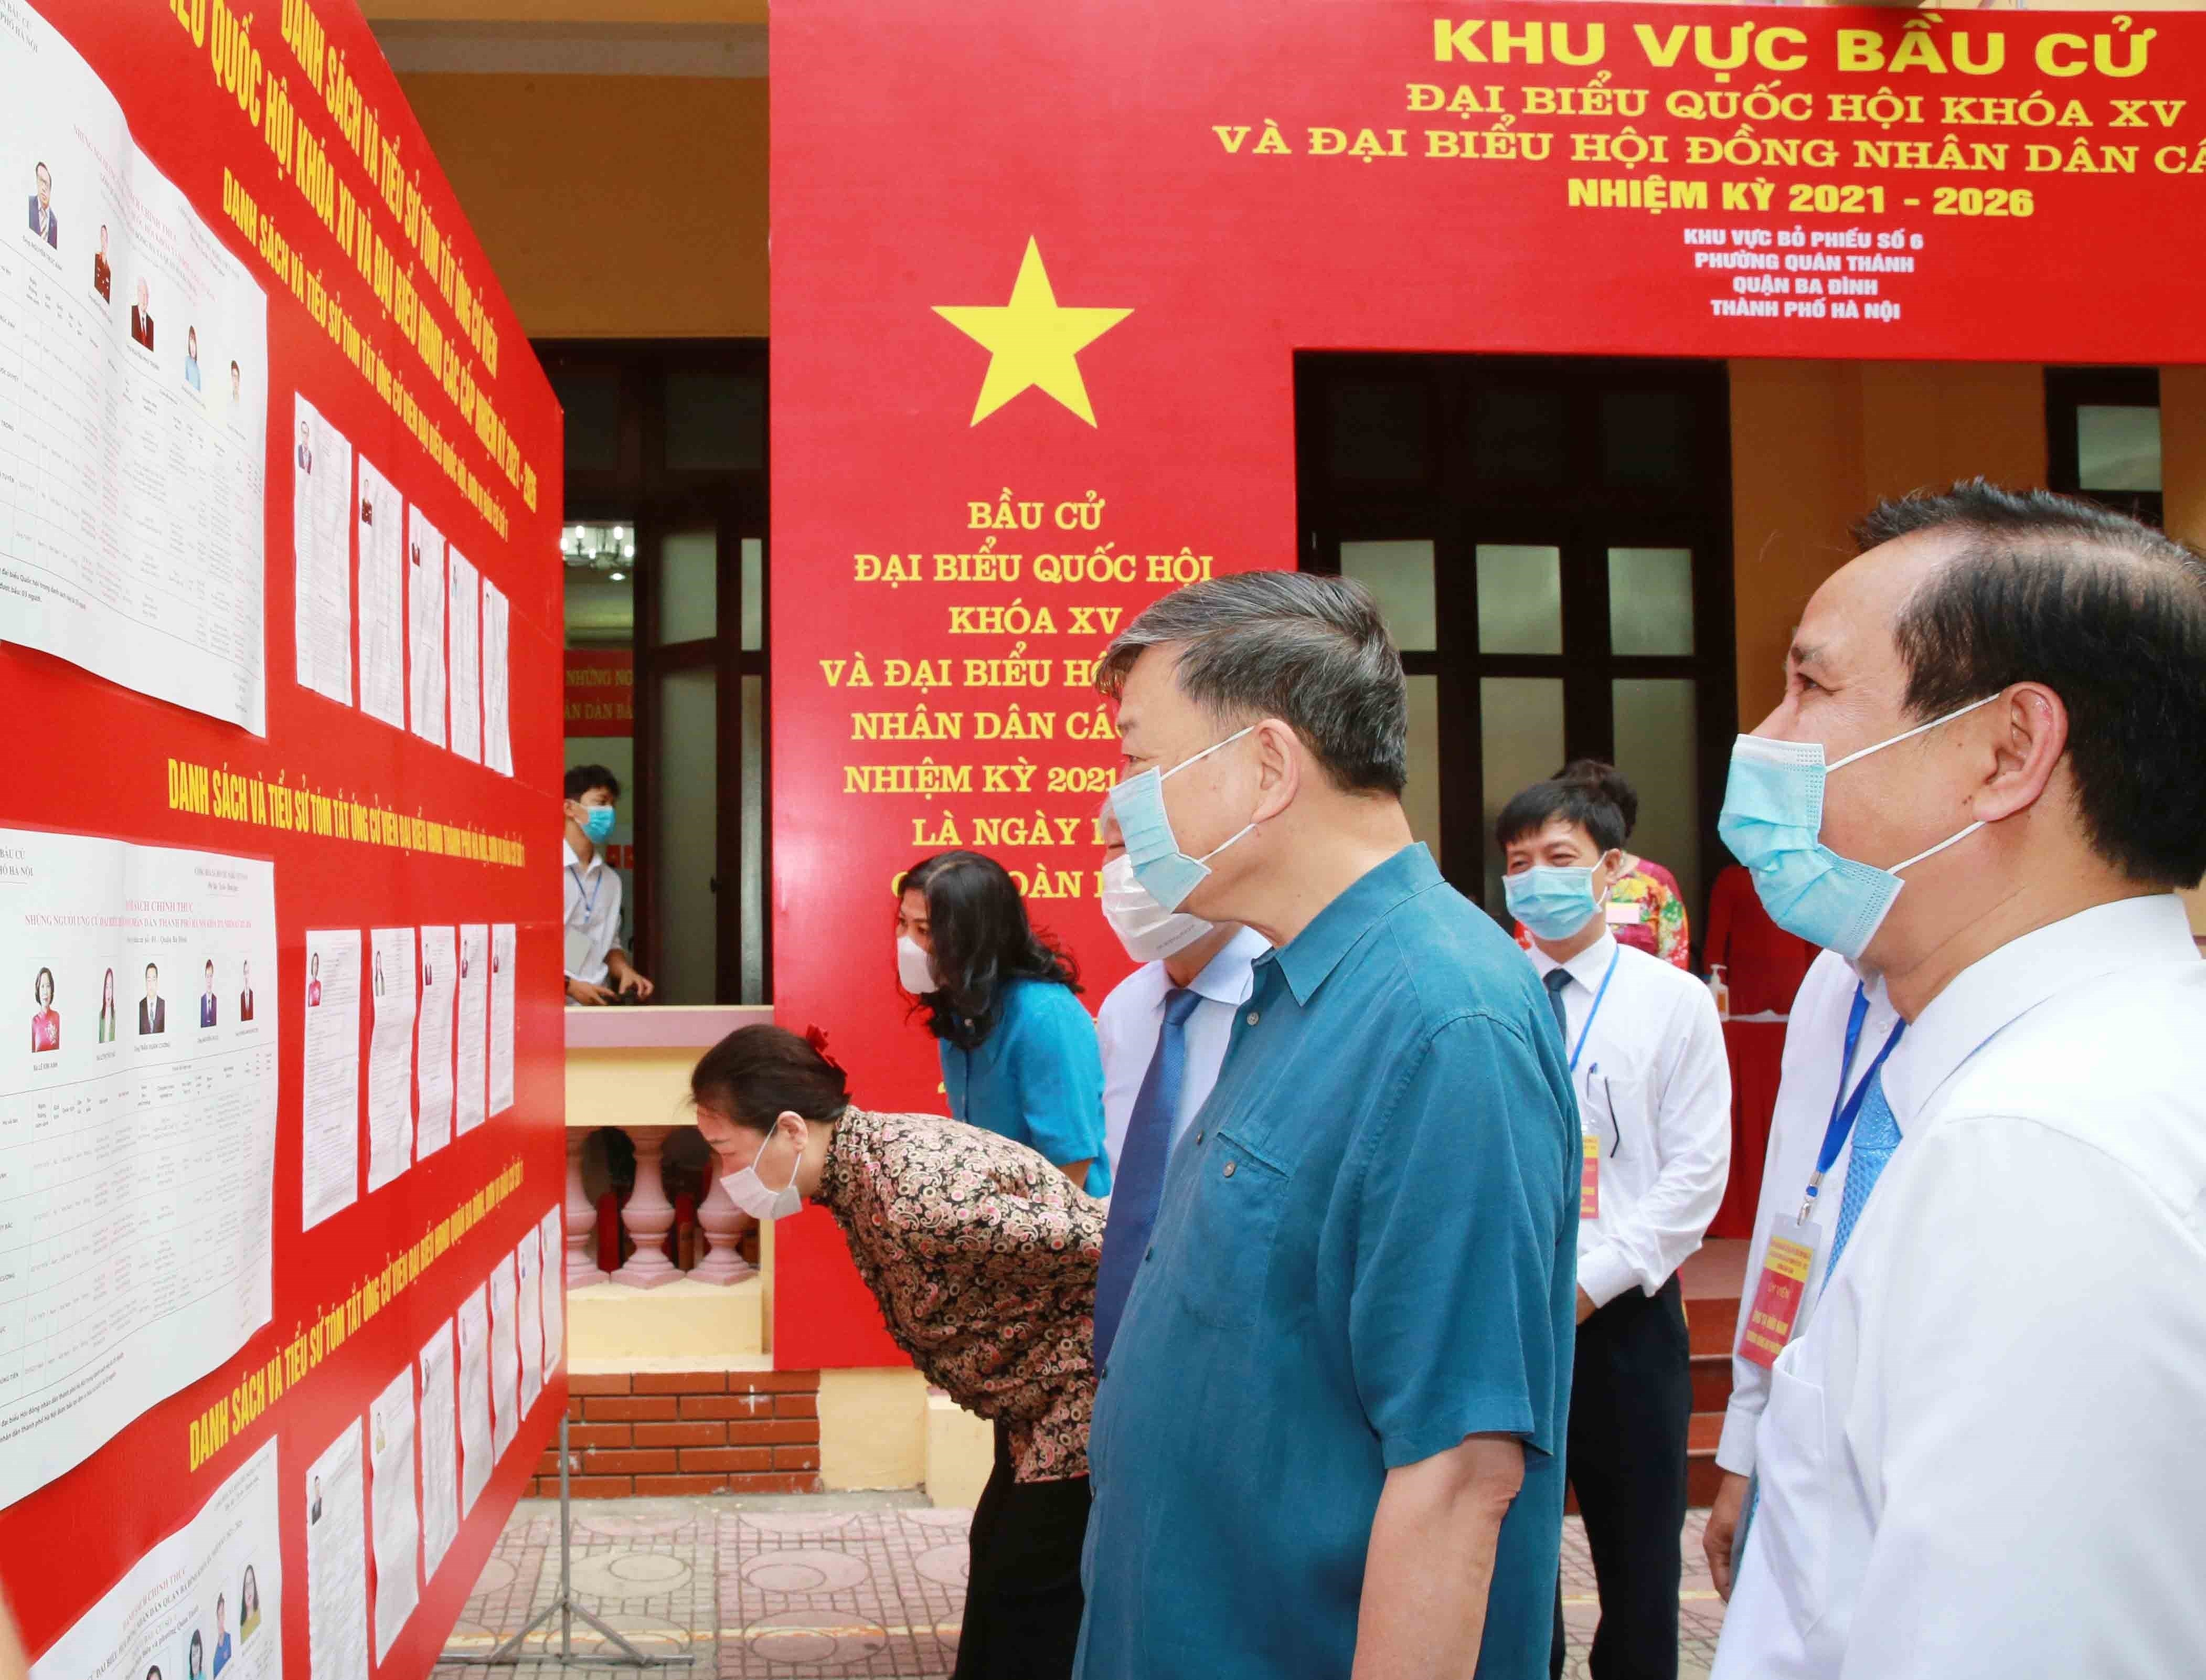 Voters nationwide cast ballots hinh anh 7